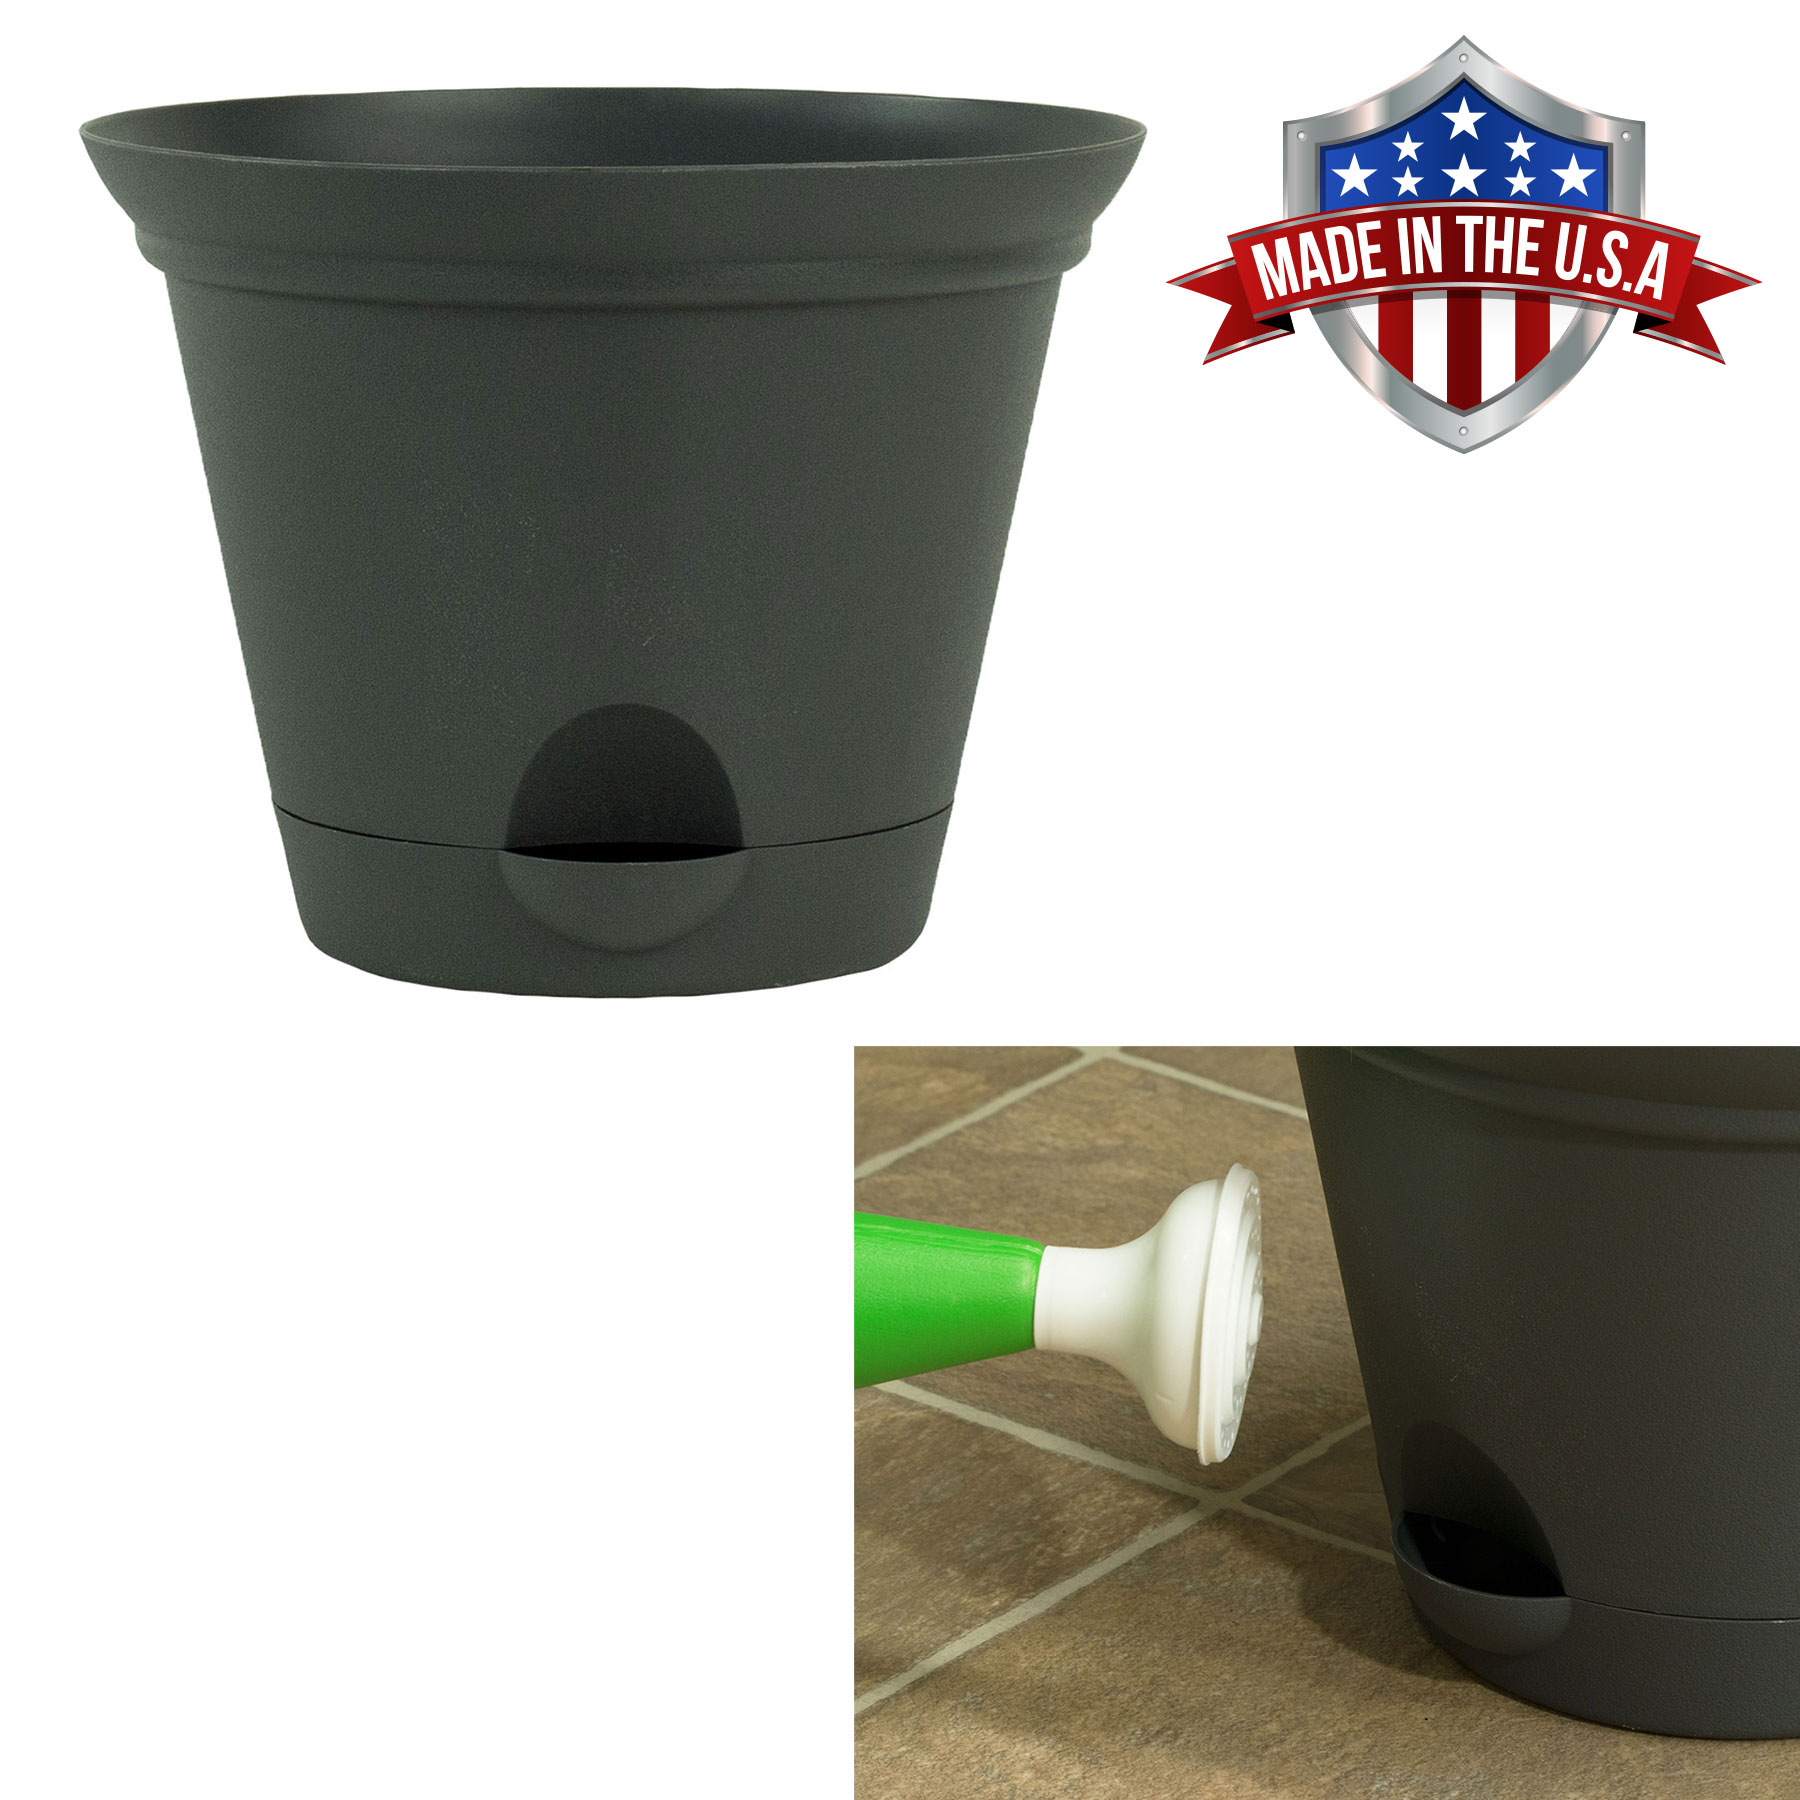 11.5 Inch Flat Gray Plastic Self Watering Flare Flower Pot or Garden Planter